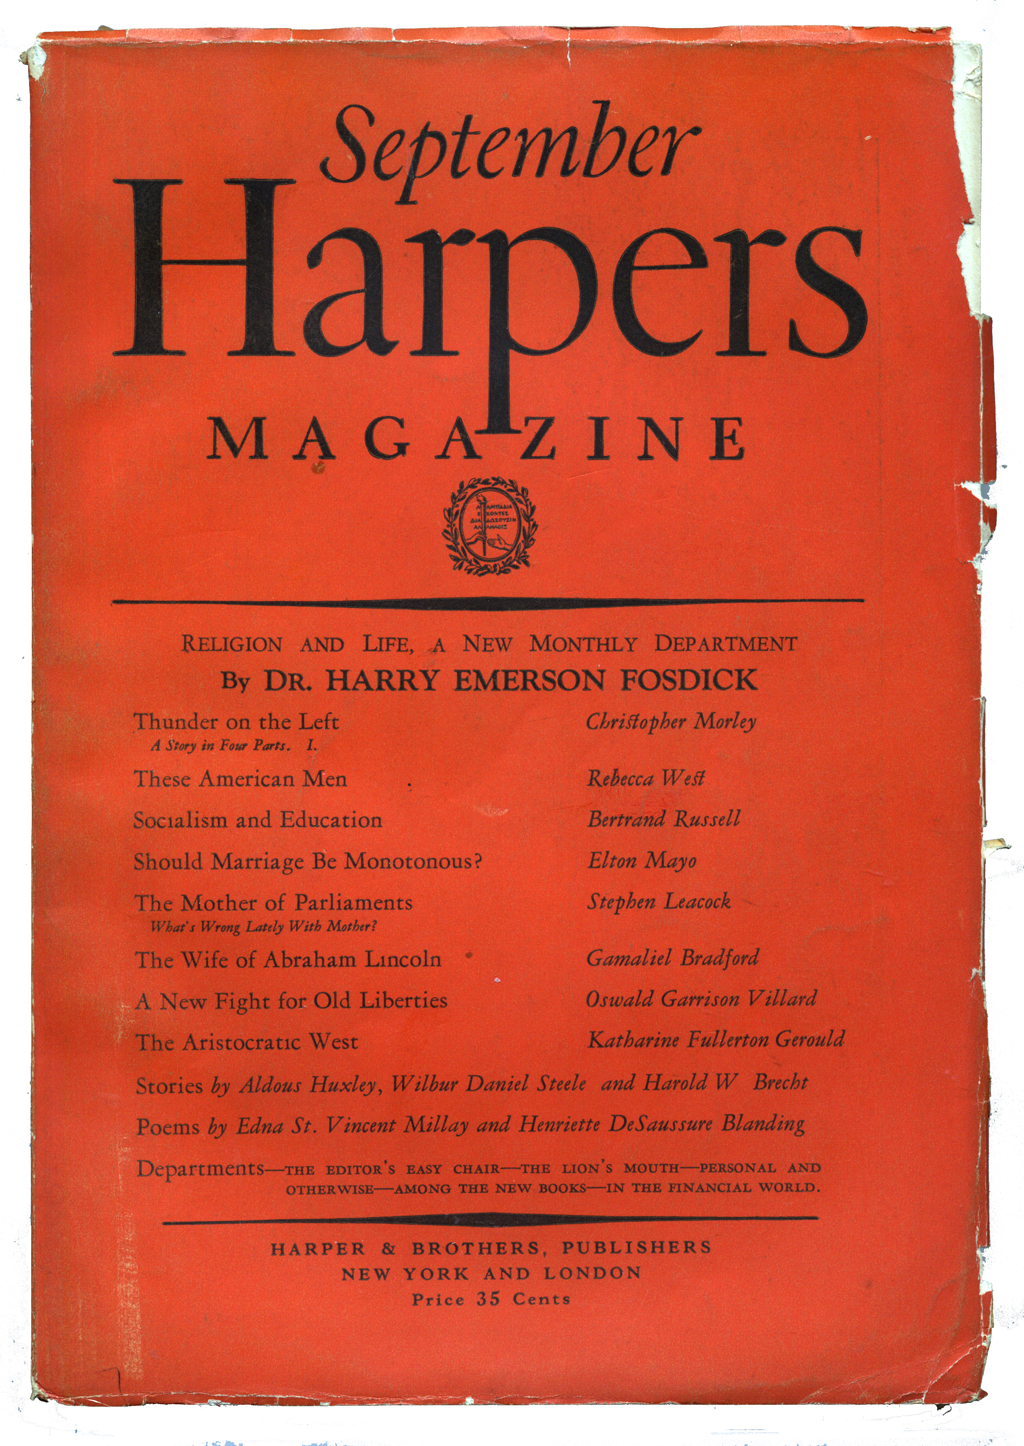 Cover of Harpers Magazine (September 1925). Design by W.A. Dwiggins.